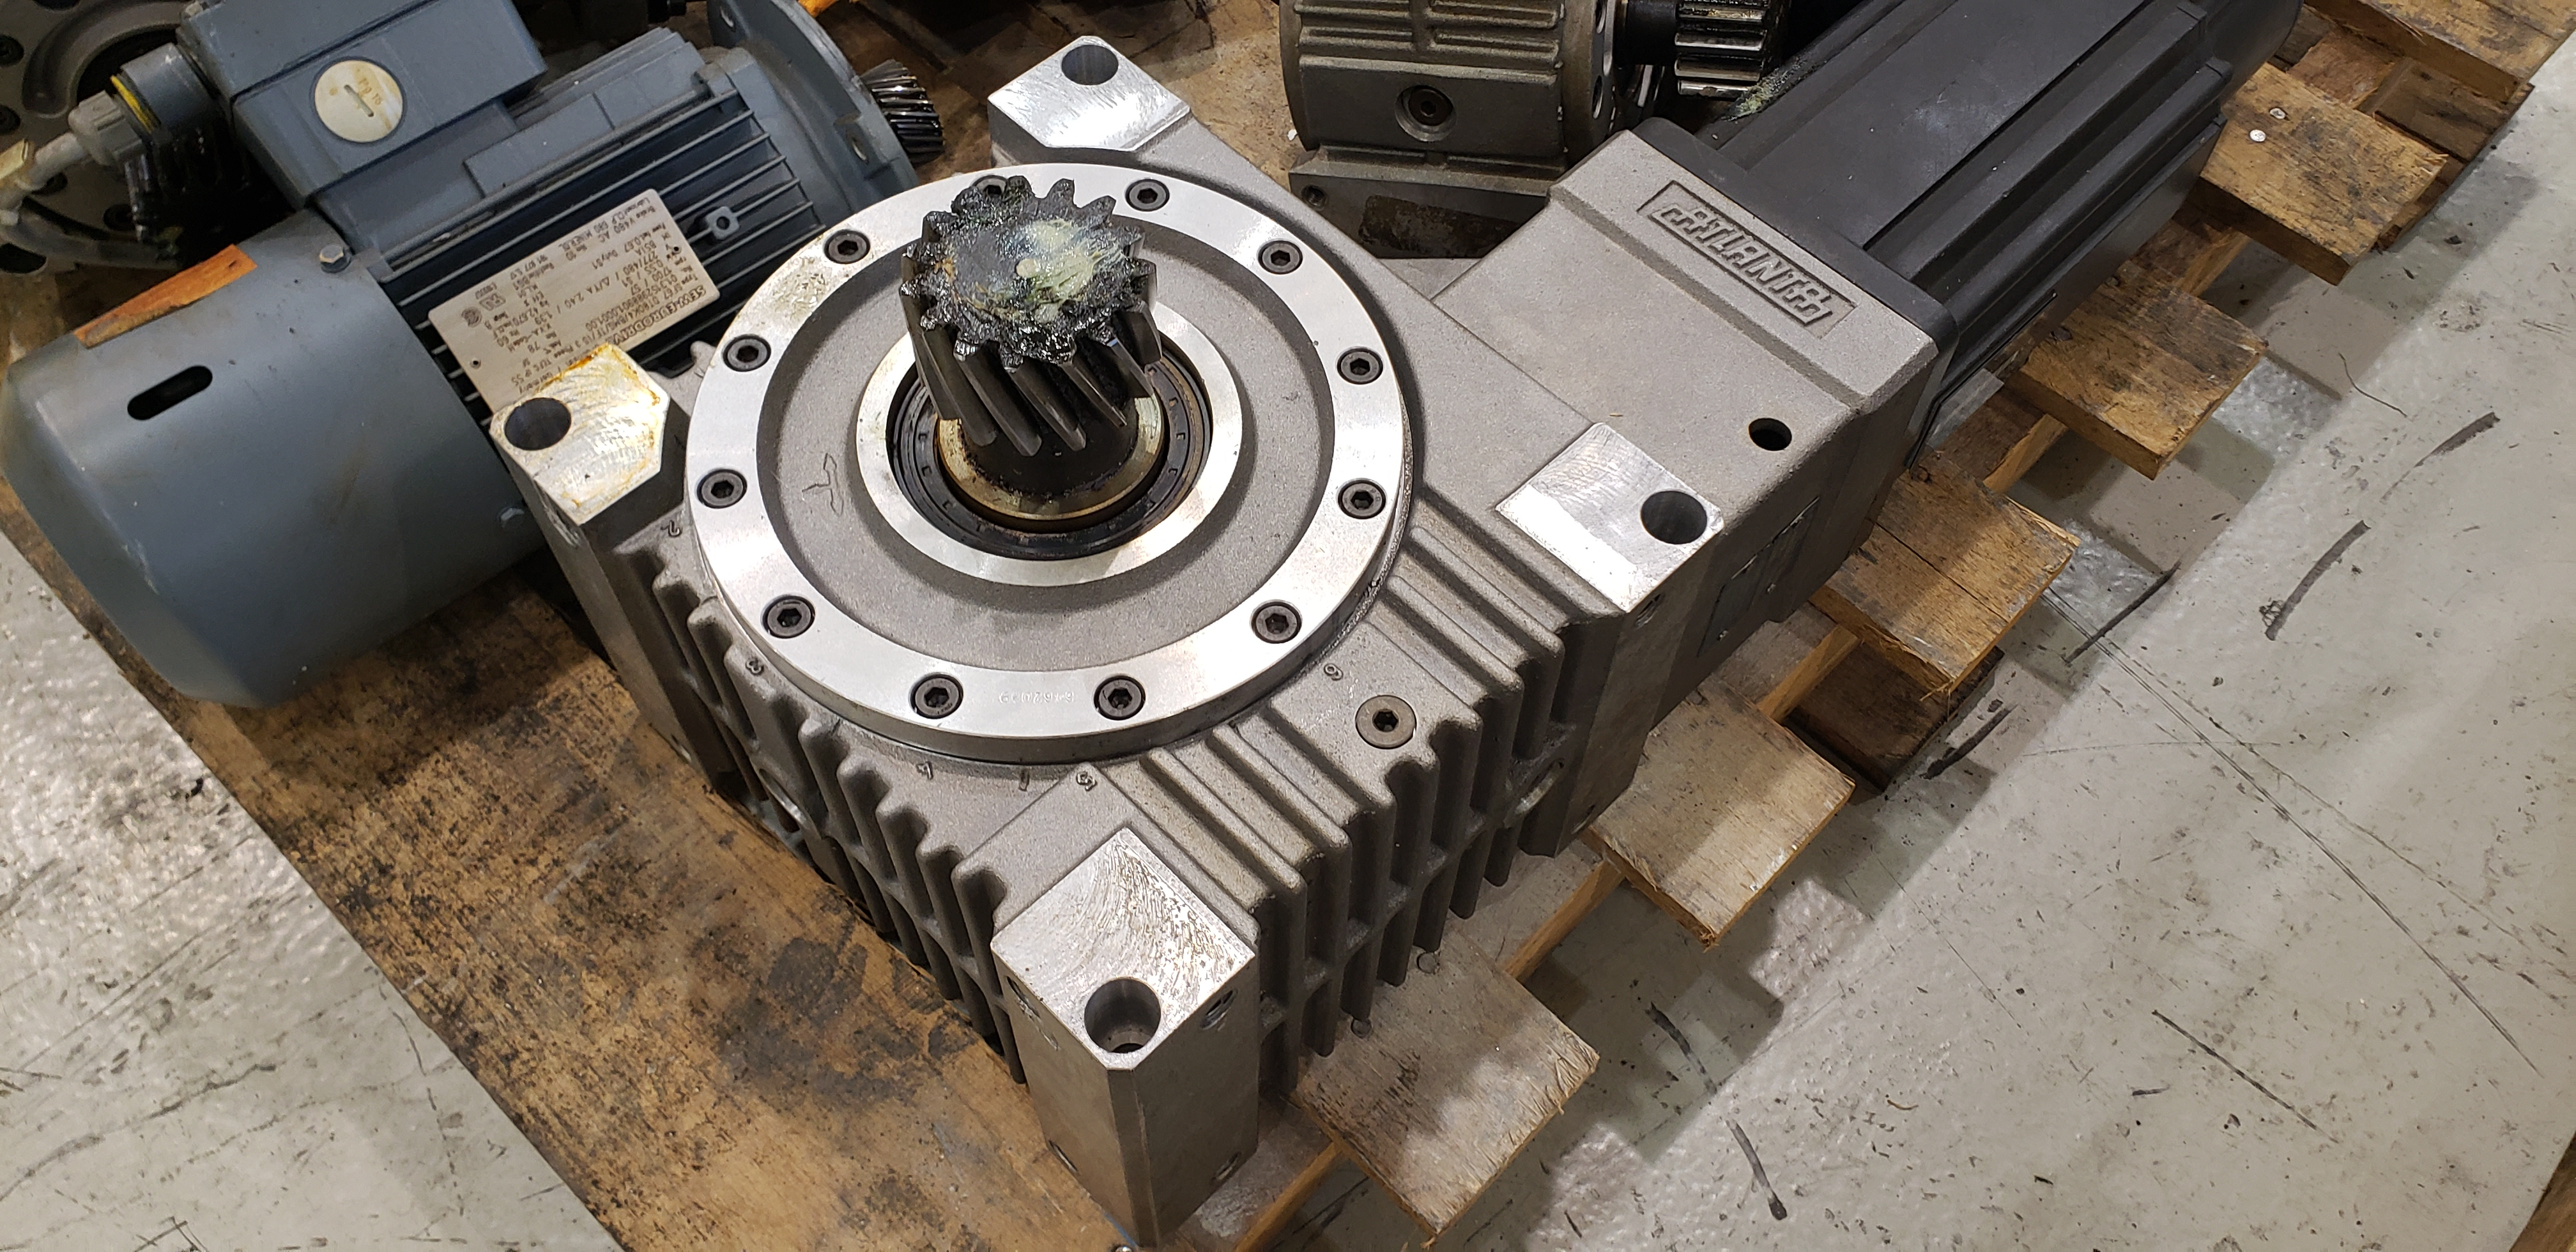 Atlanta Gear Reducer Model: 58-46-039